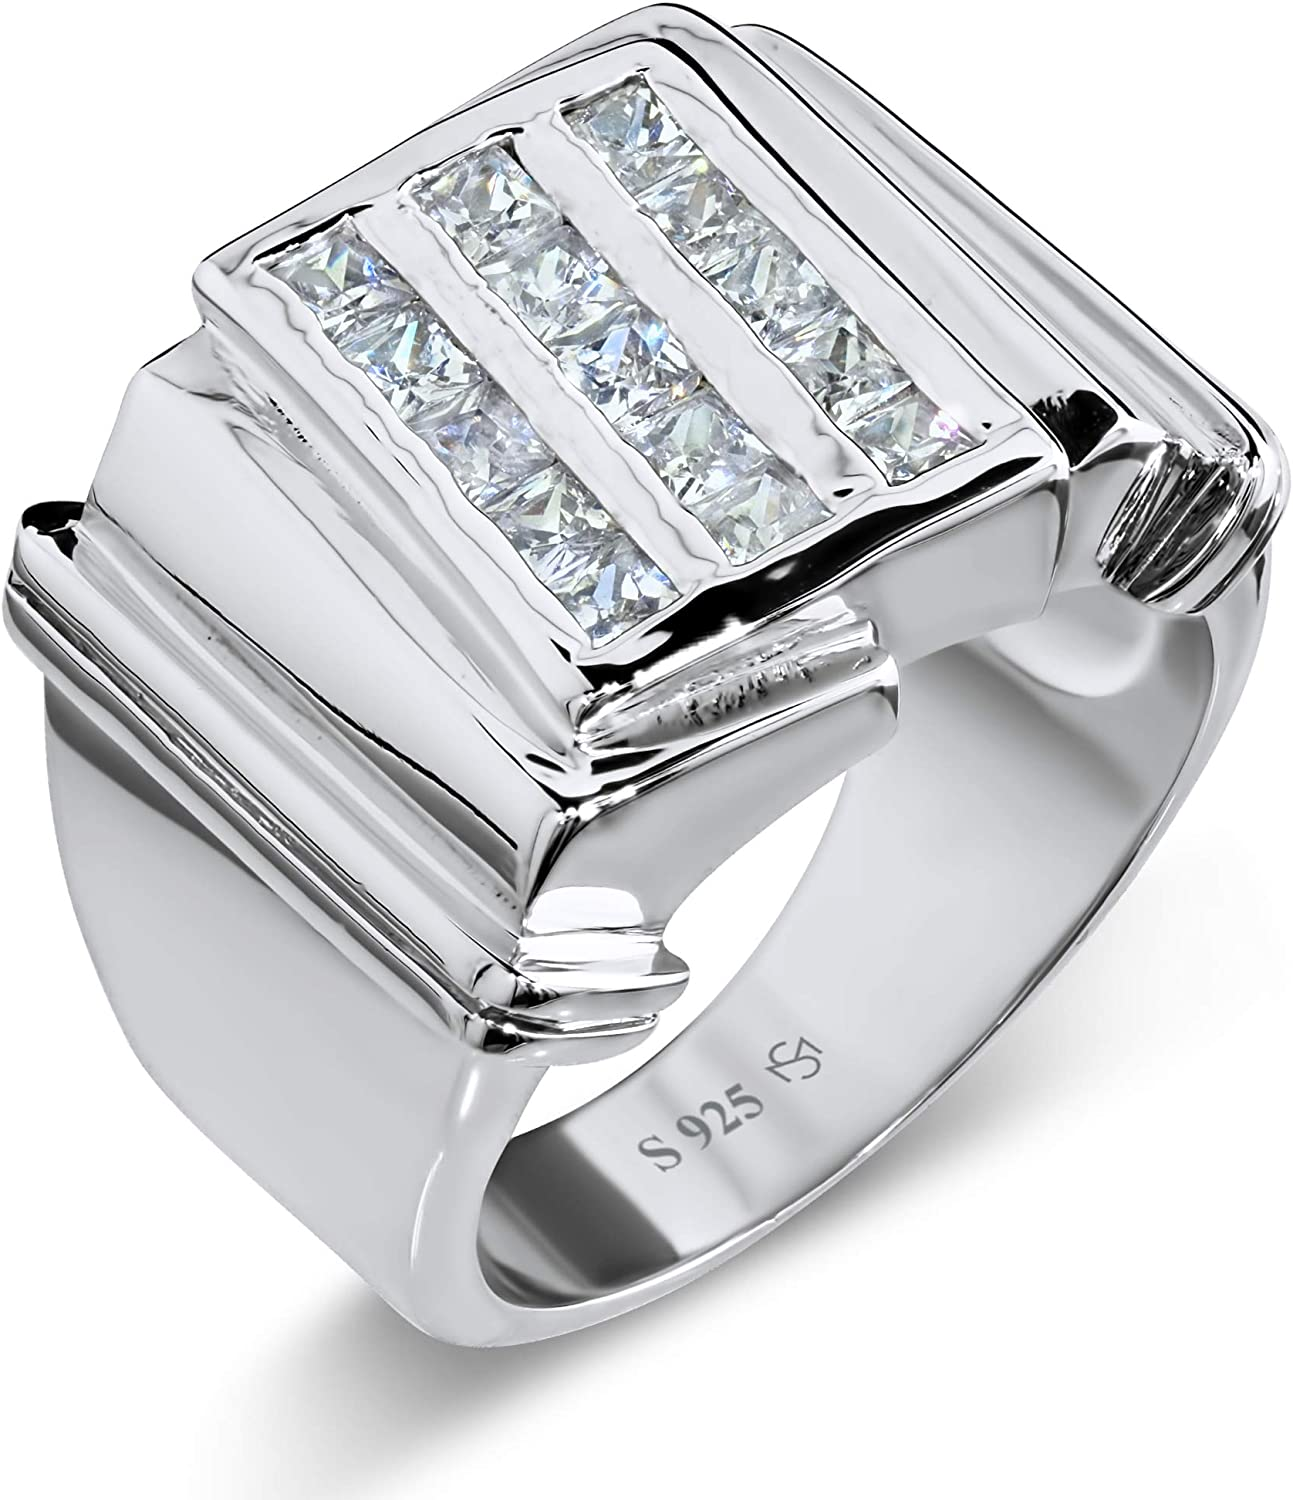 [2-5 Days Delivery] Men's Elegant Sterling Silver .925 Triple Row Ring with Fancy Cubic Zirconia (CZ) Channel Set Stones, Platinum Plated.